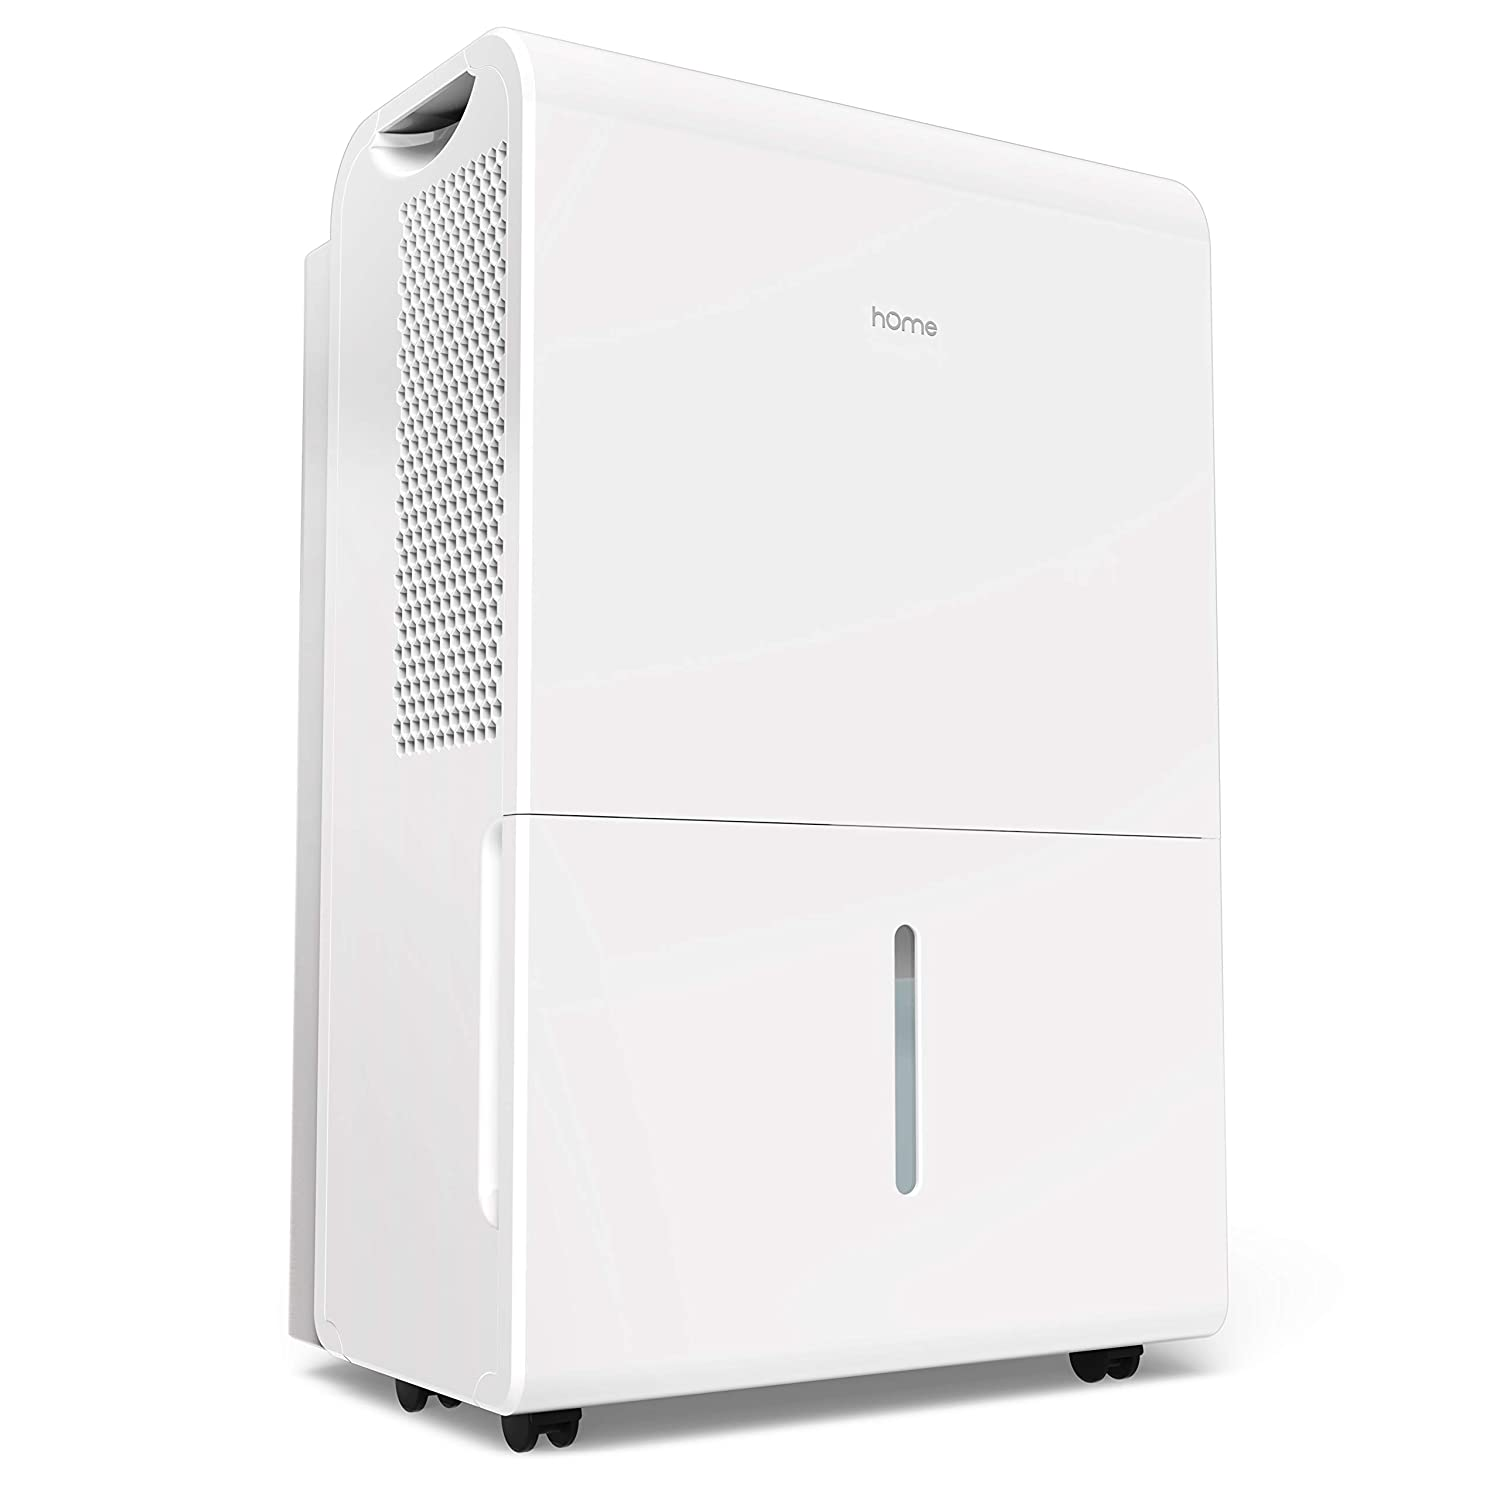 hOmeLabs Energy Star Dehumidifier